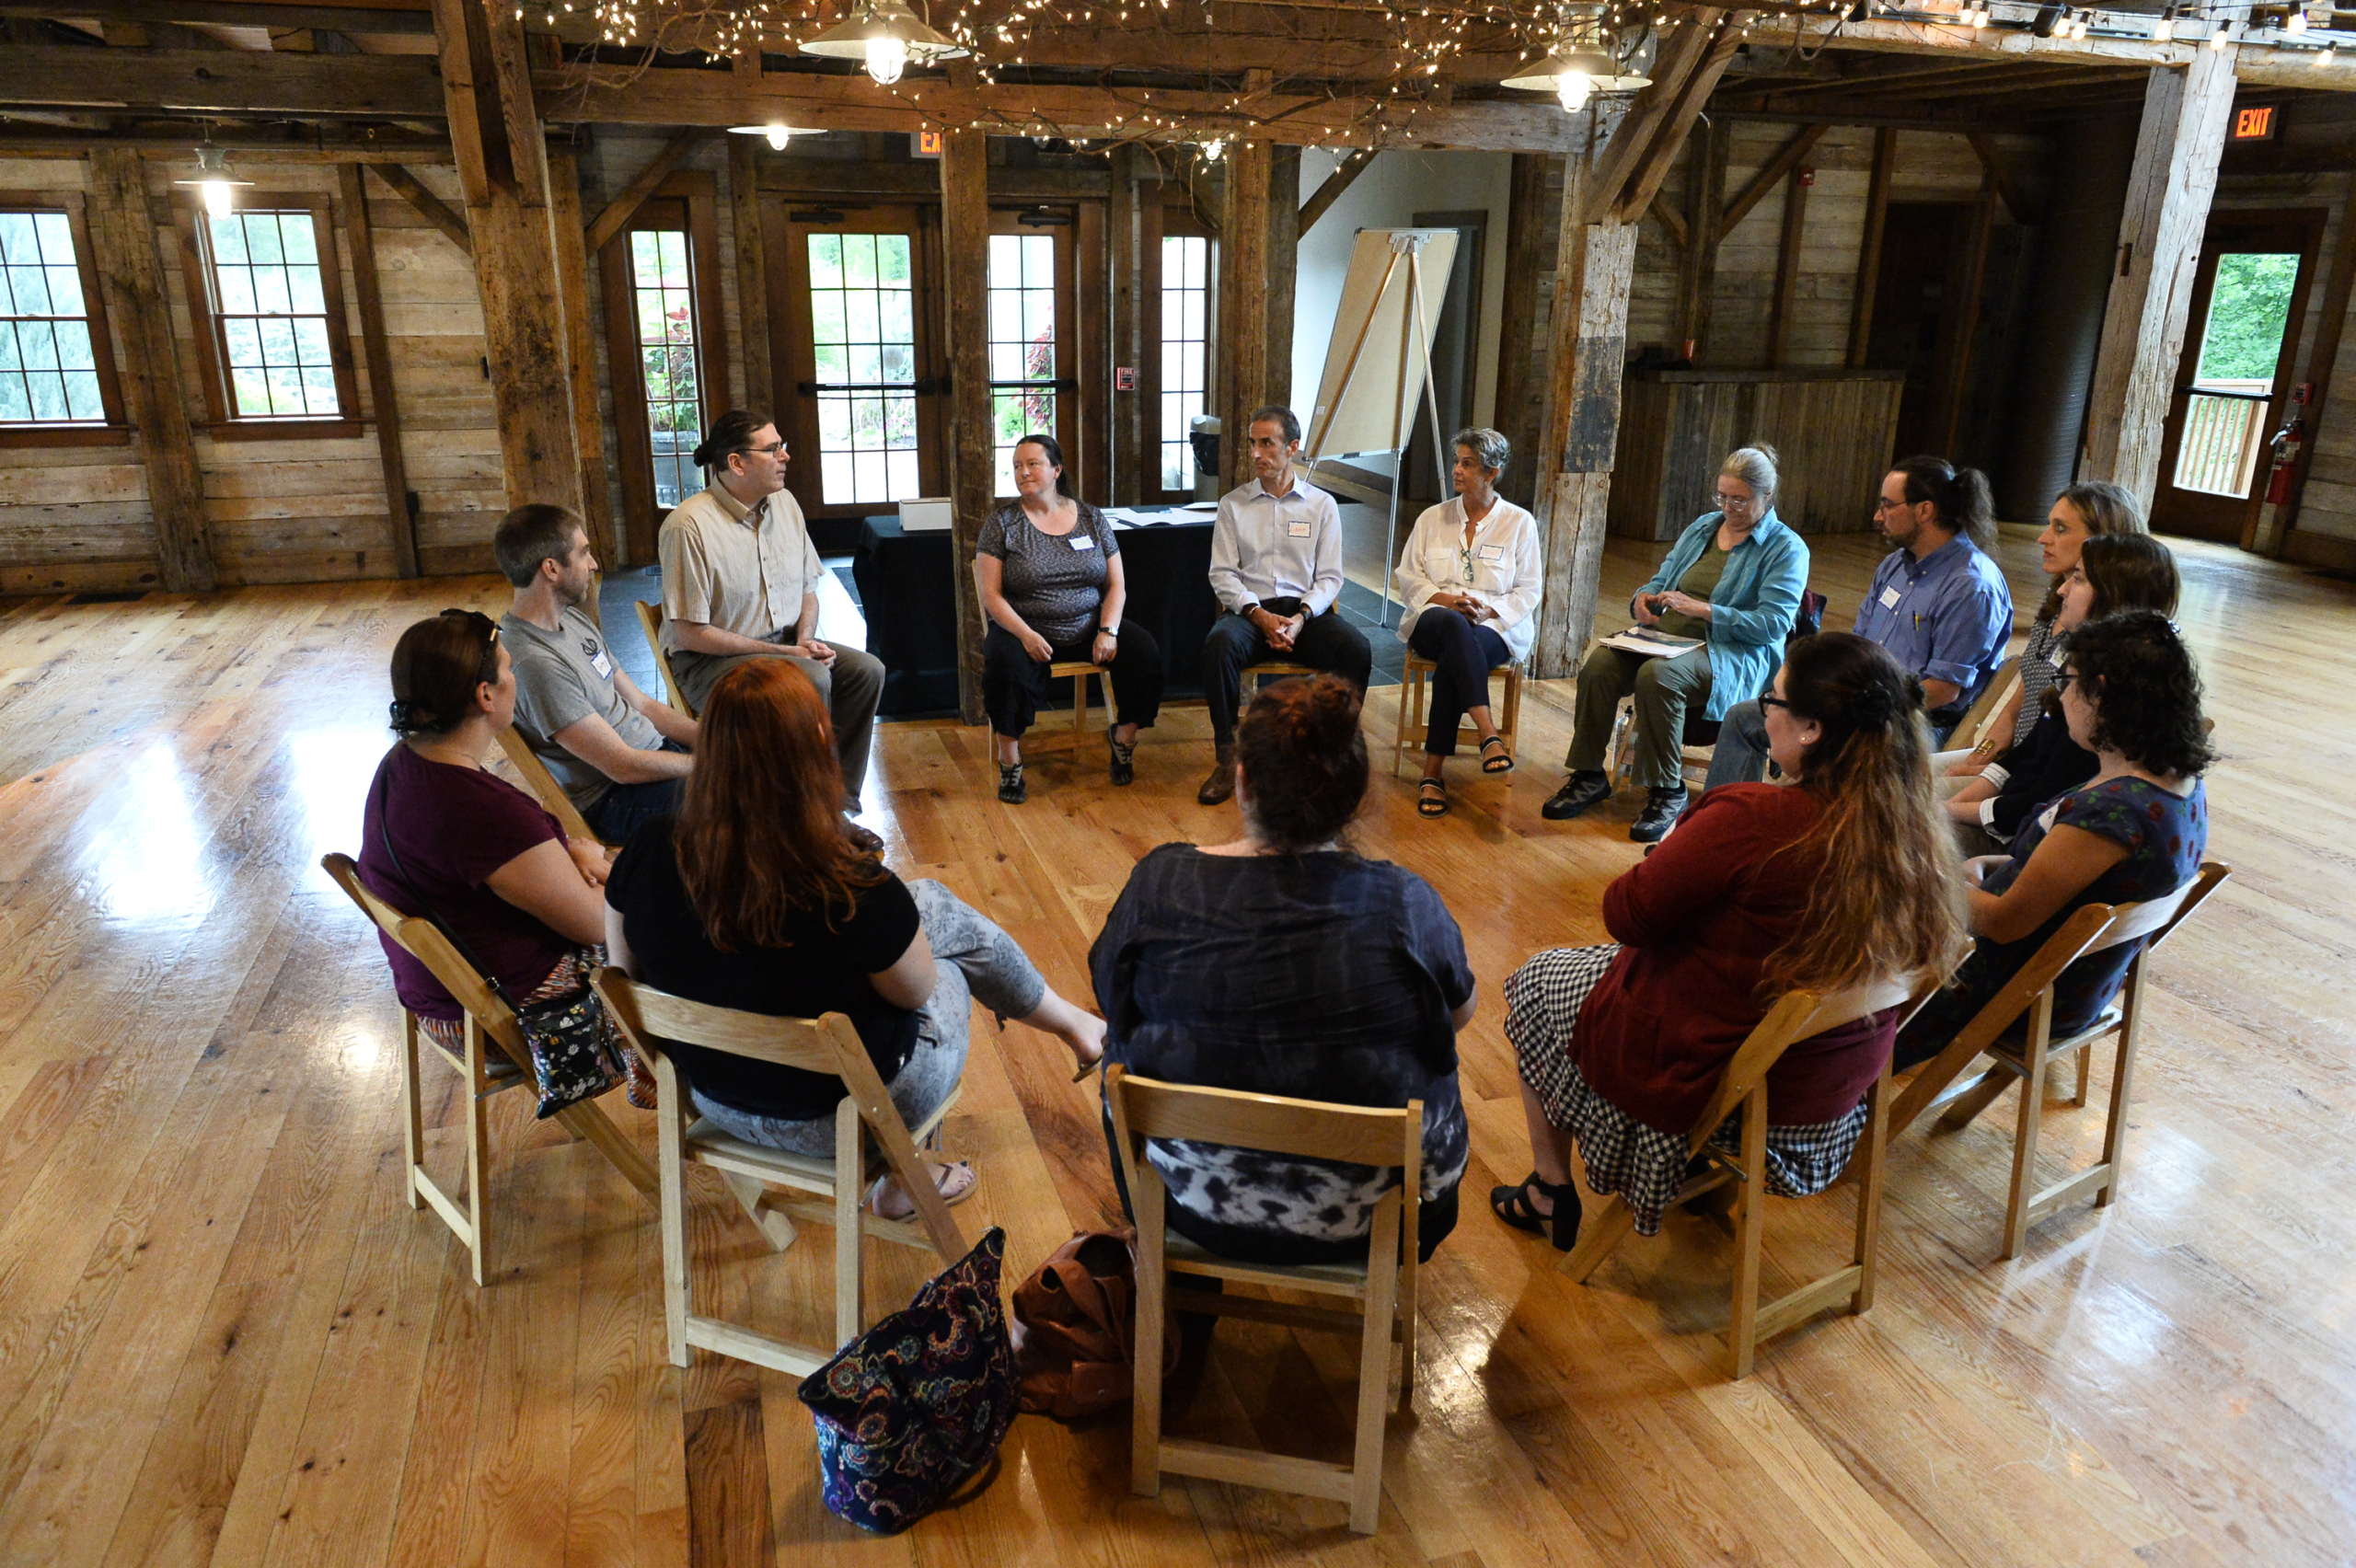 Greenstone Experiential Mental Health, Sociometric Retreat. Summer retreats in barn and at rotary club in Upstate New York. Capital Region's finest trainers in business consultation and emotional intelligence.